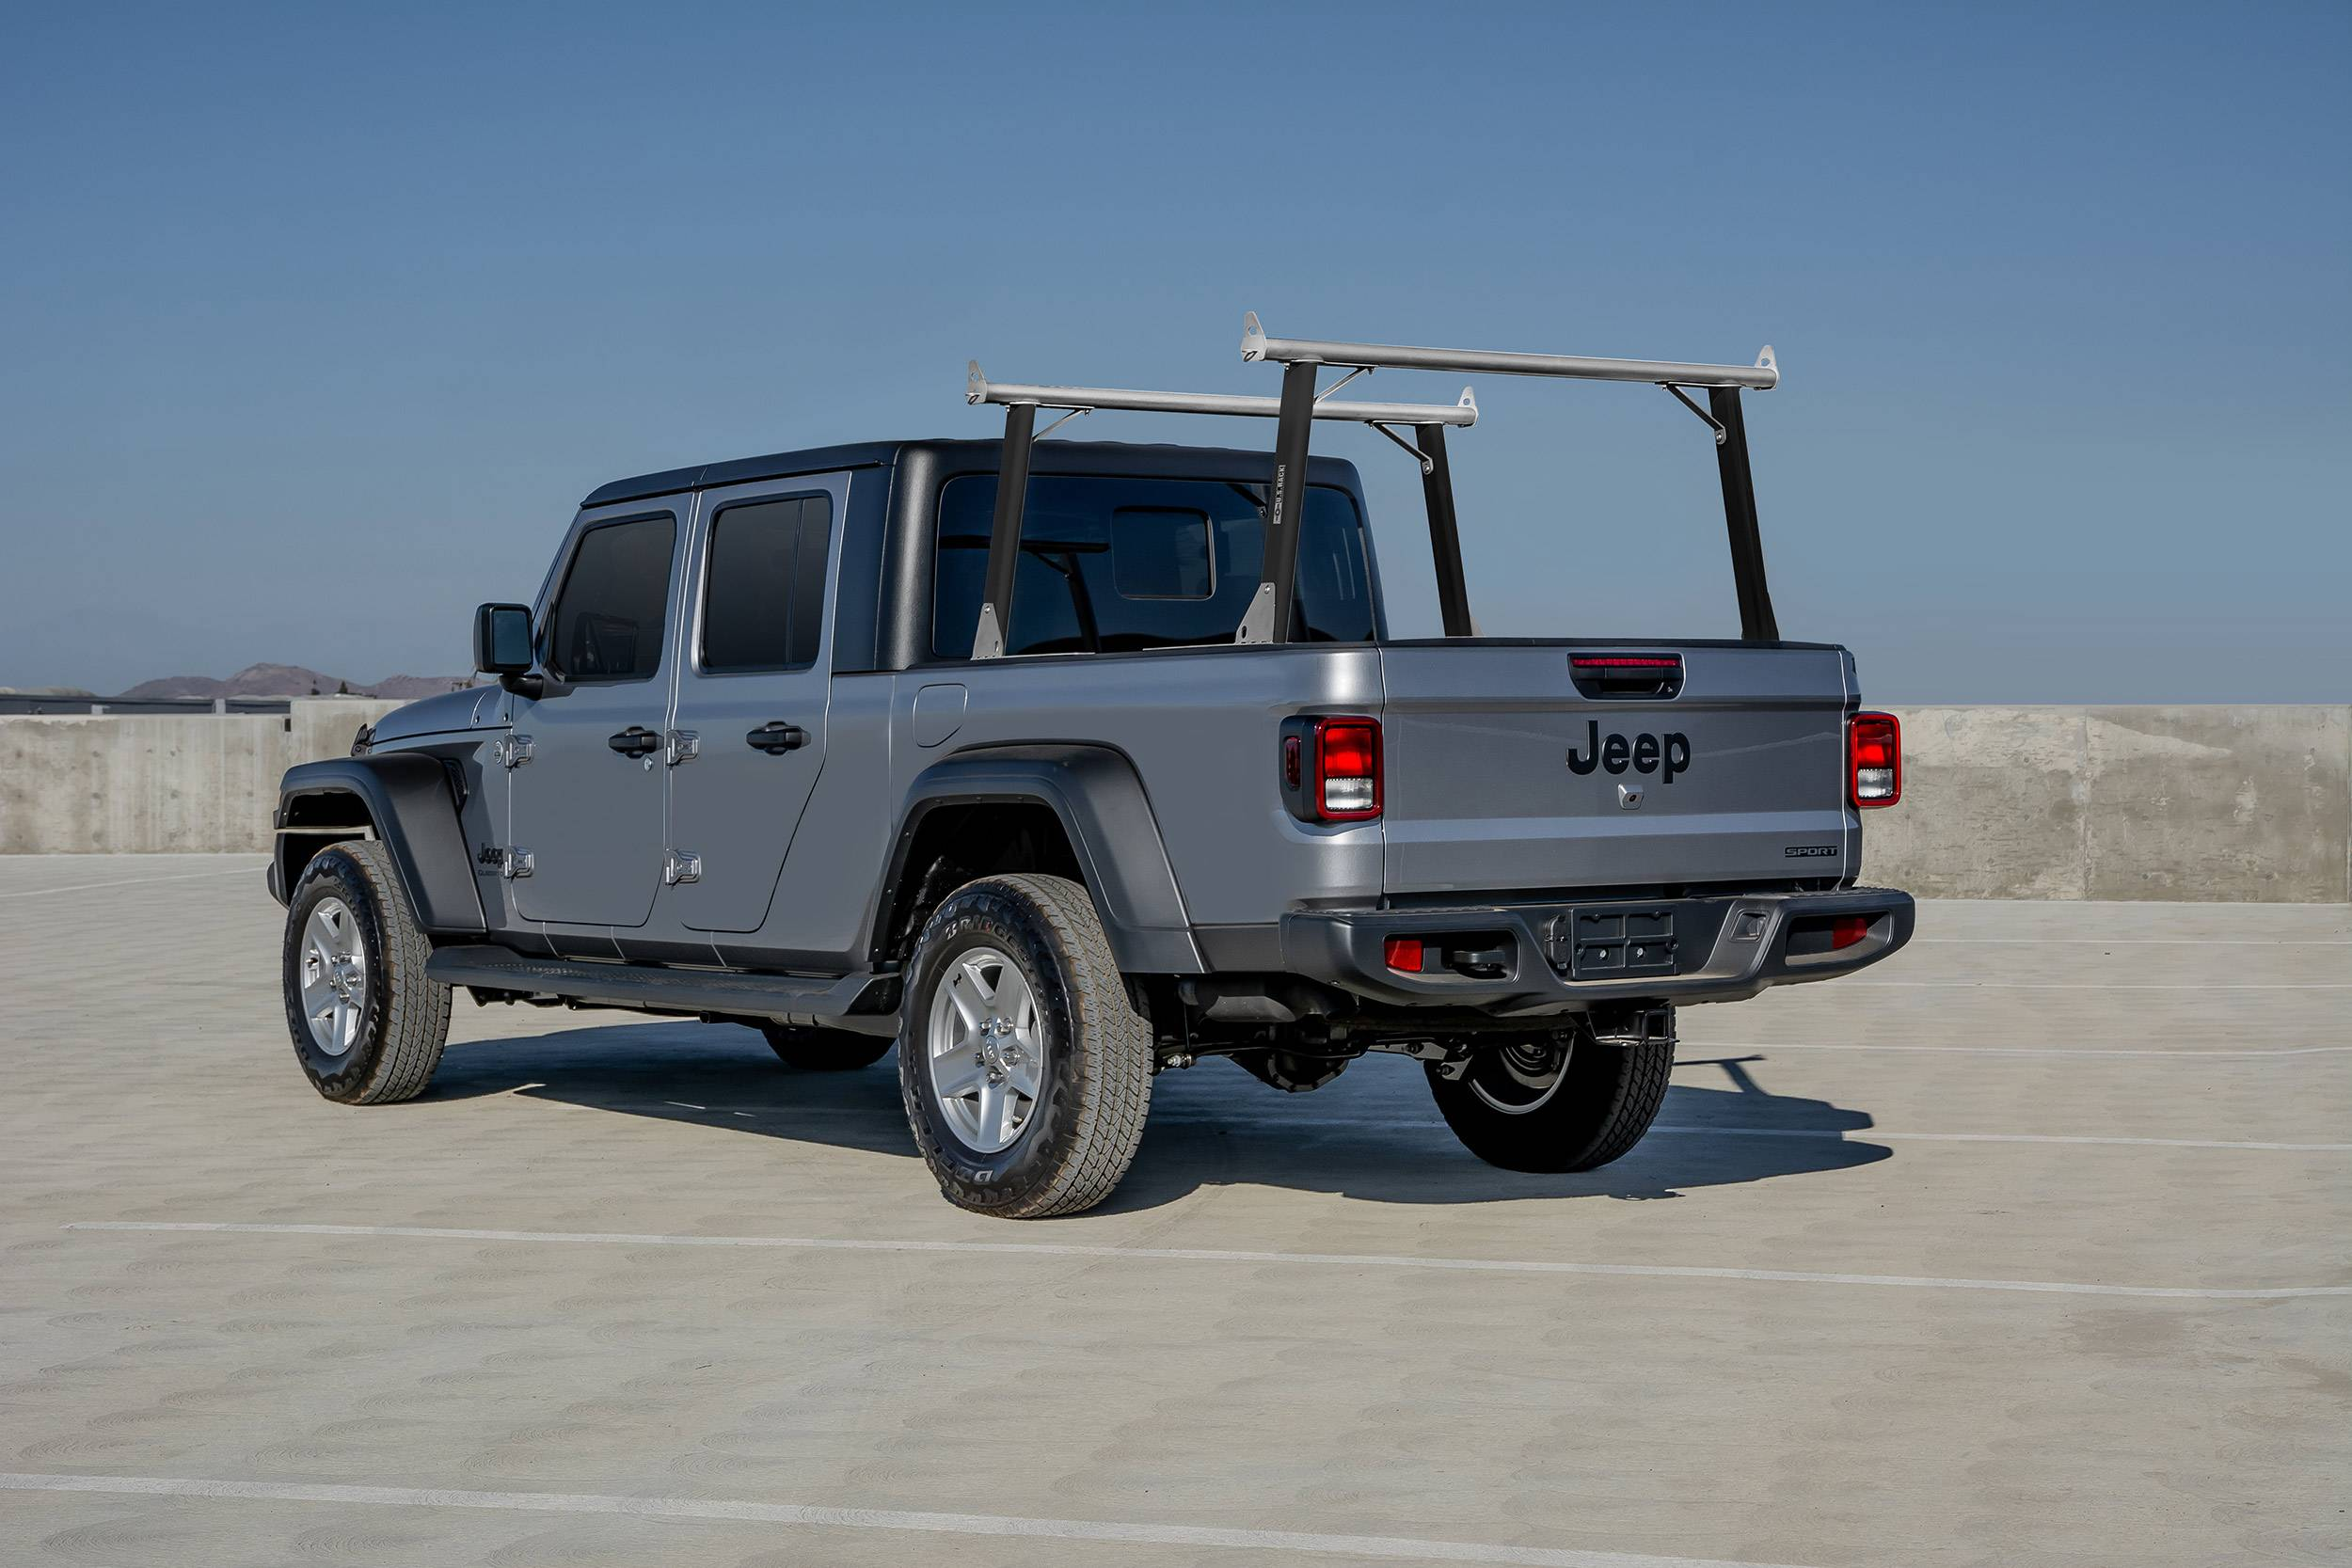 2020 Jeep Gladiator Clipper Truck Rack, Fleetside, Track System, Above Cab Height, Brushed Cross Bar, Black Legs and Base - PN #82240152